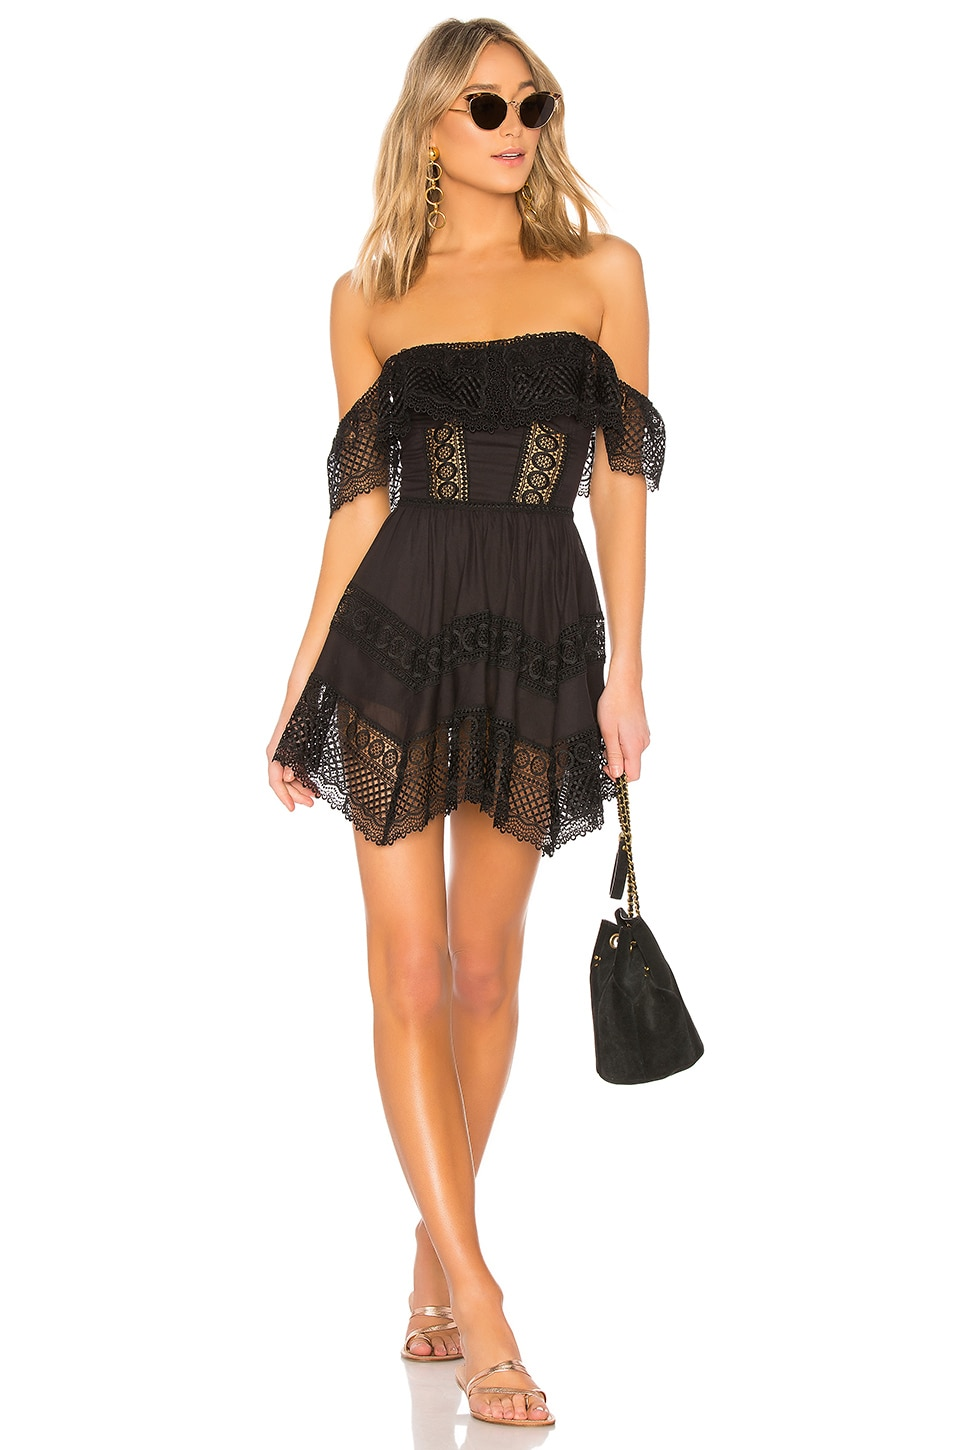 Charo Ruiz Ibiza Vaiana Dress in Black